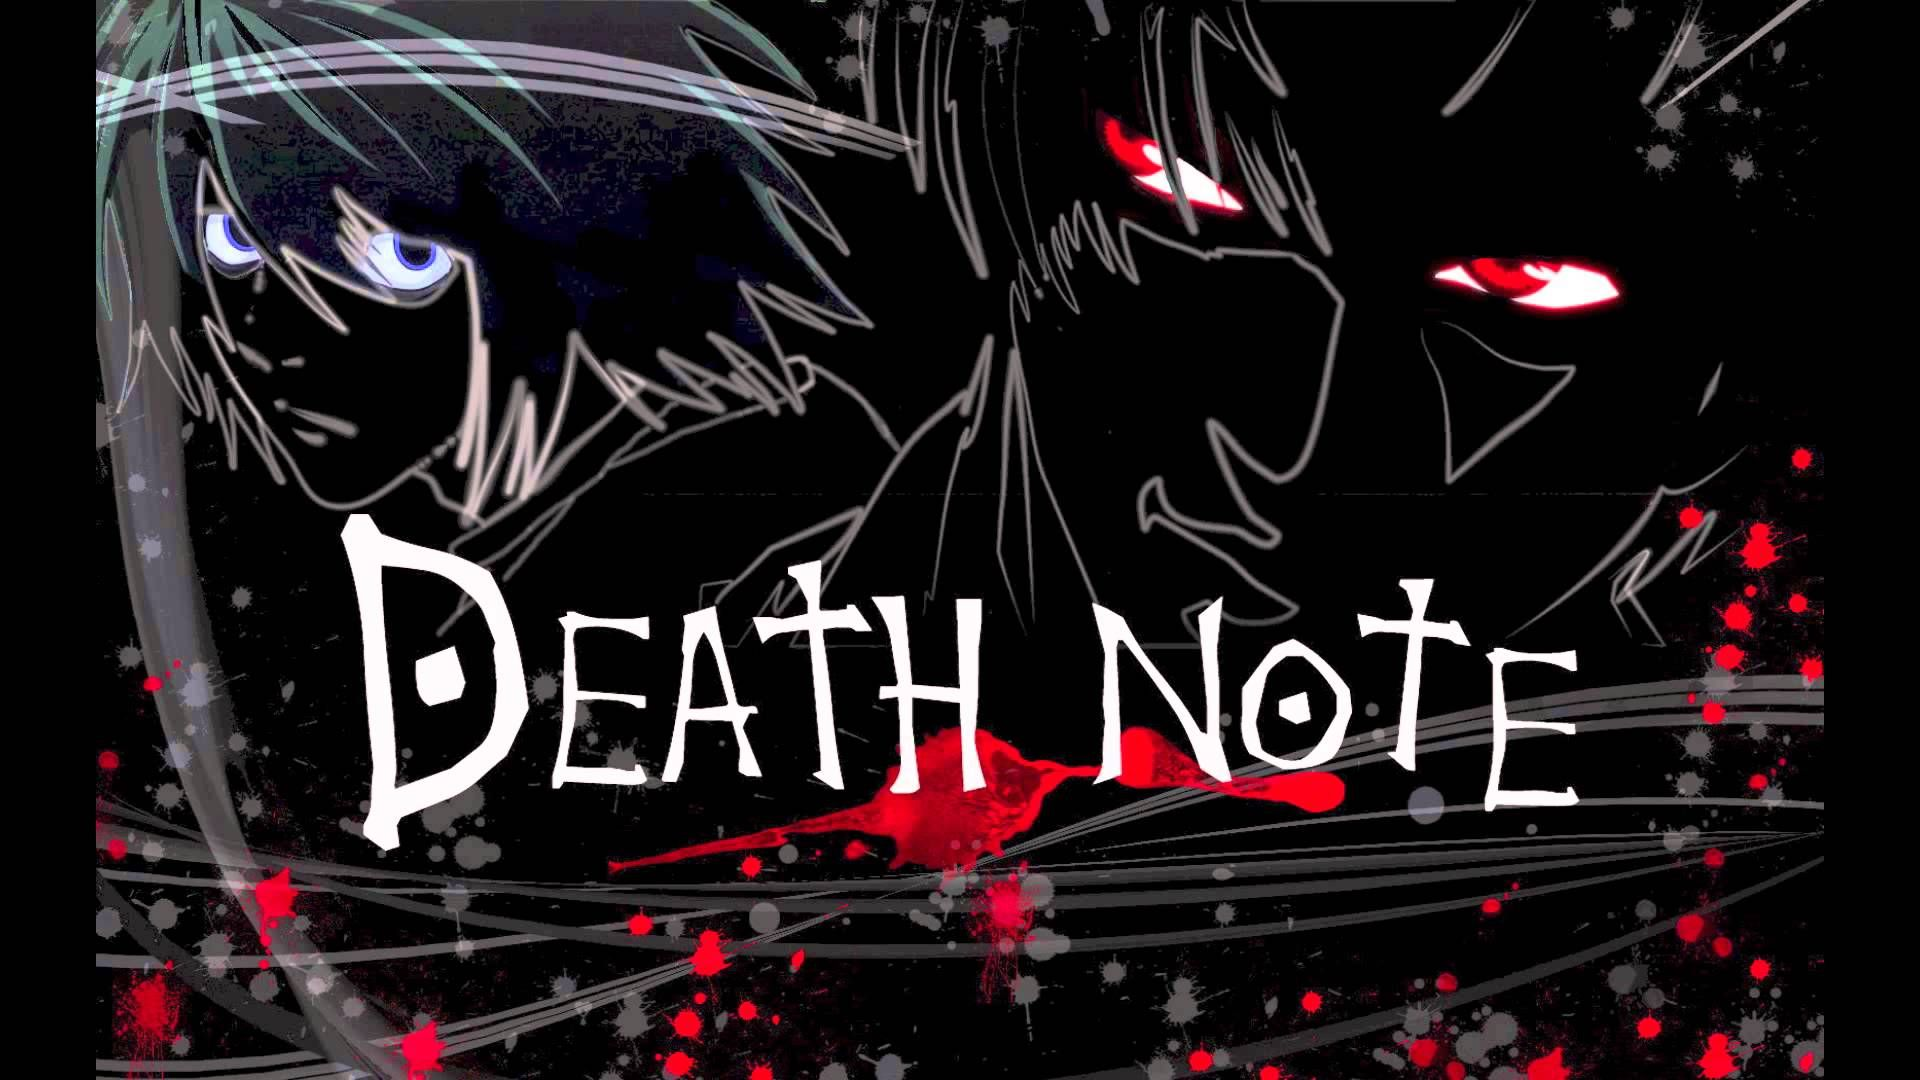 Google themes death note - Death Note Opening 1 Full Song